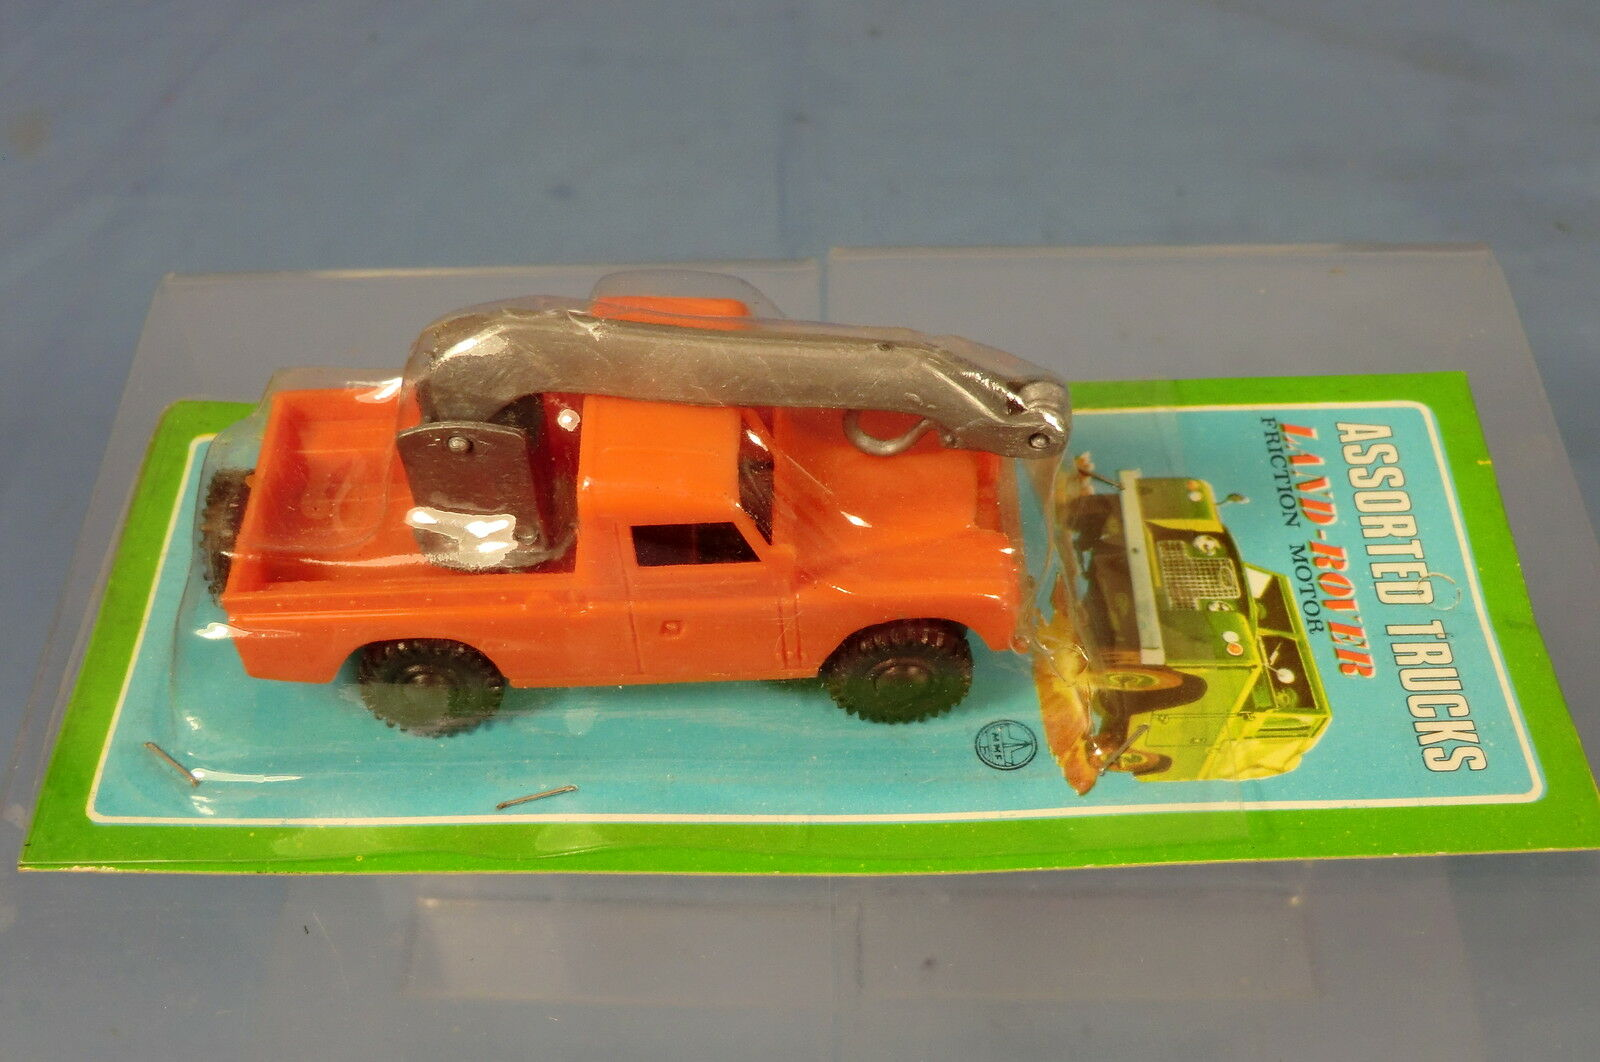 VINTAGE MMF PLASTIC FRICTION DRIVEN LAND ROVER WITH HI-AB  MIC